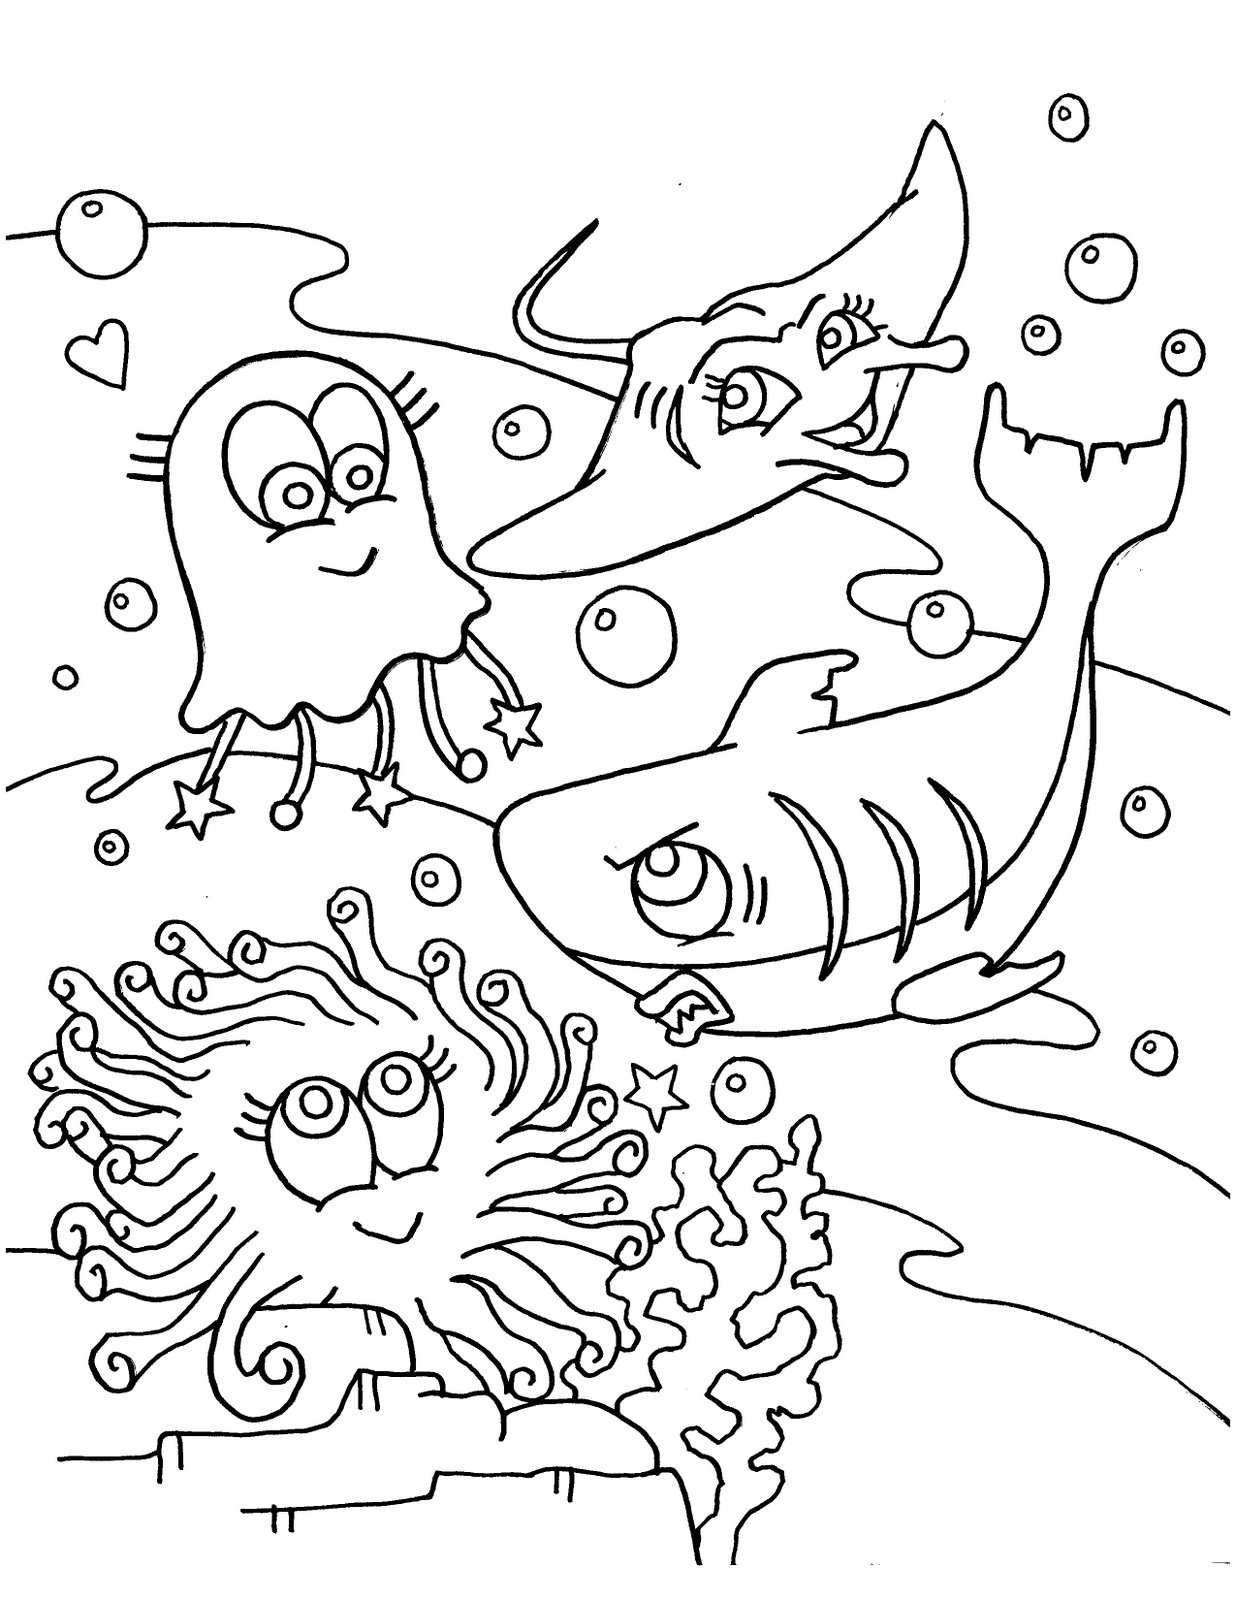 printing coloring pages of animals - Free Animals and Baby Animals Coloring Pages to Print and